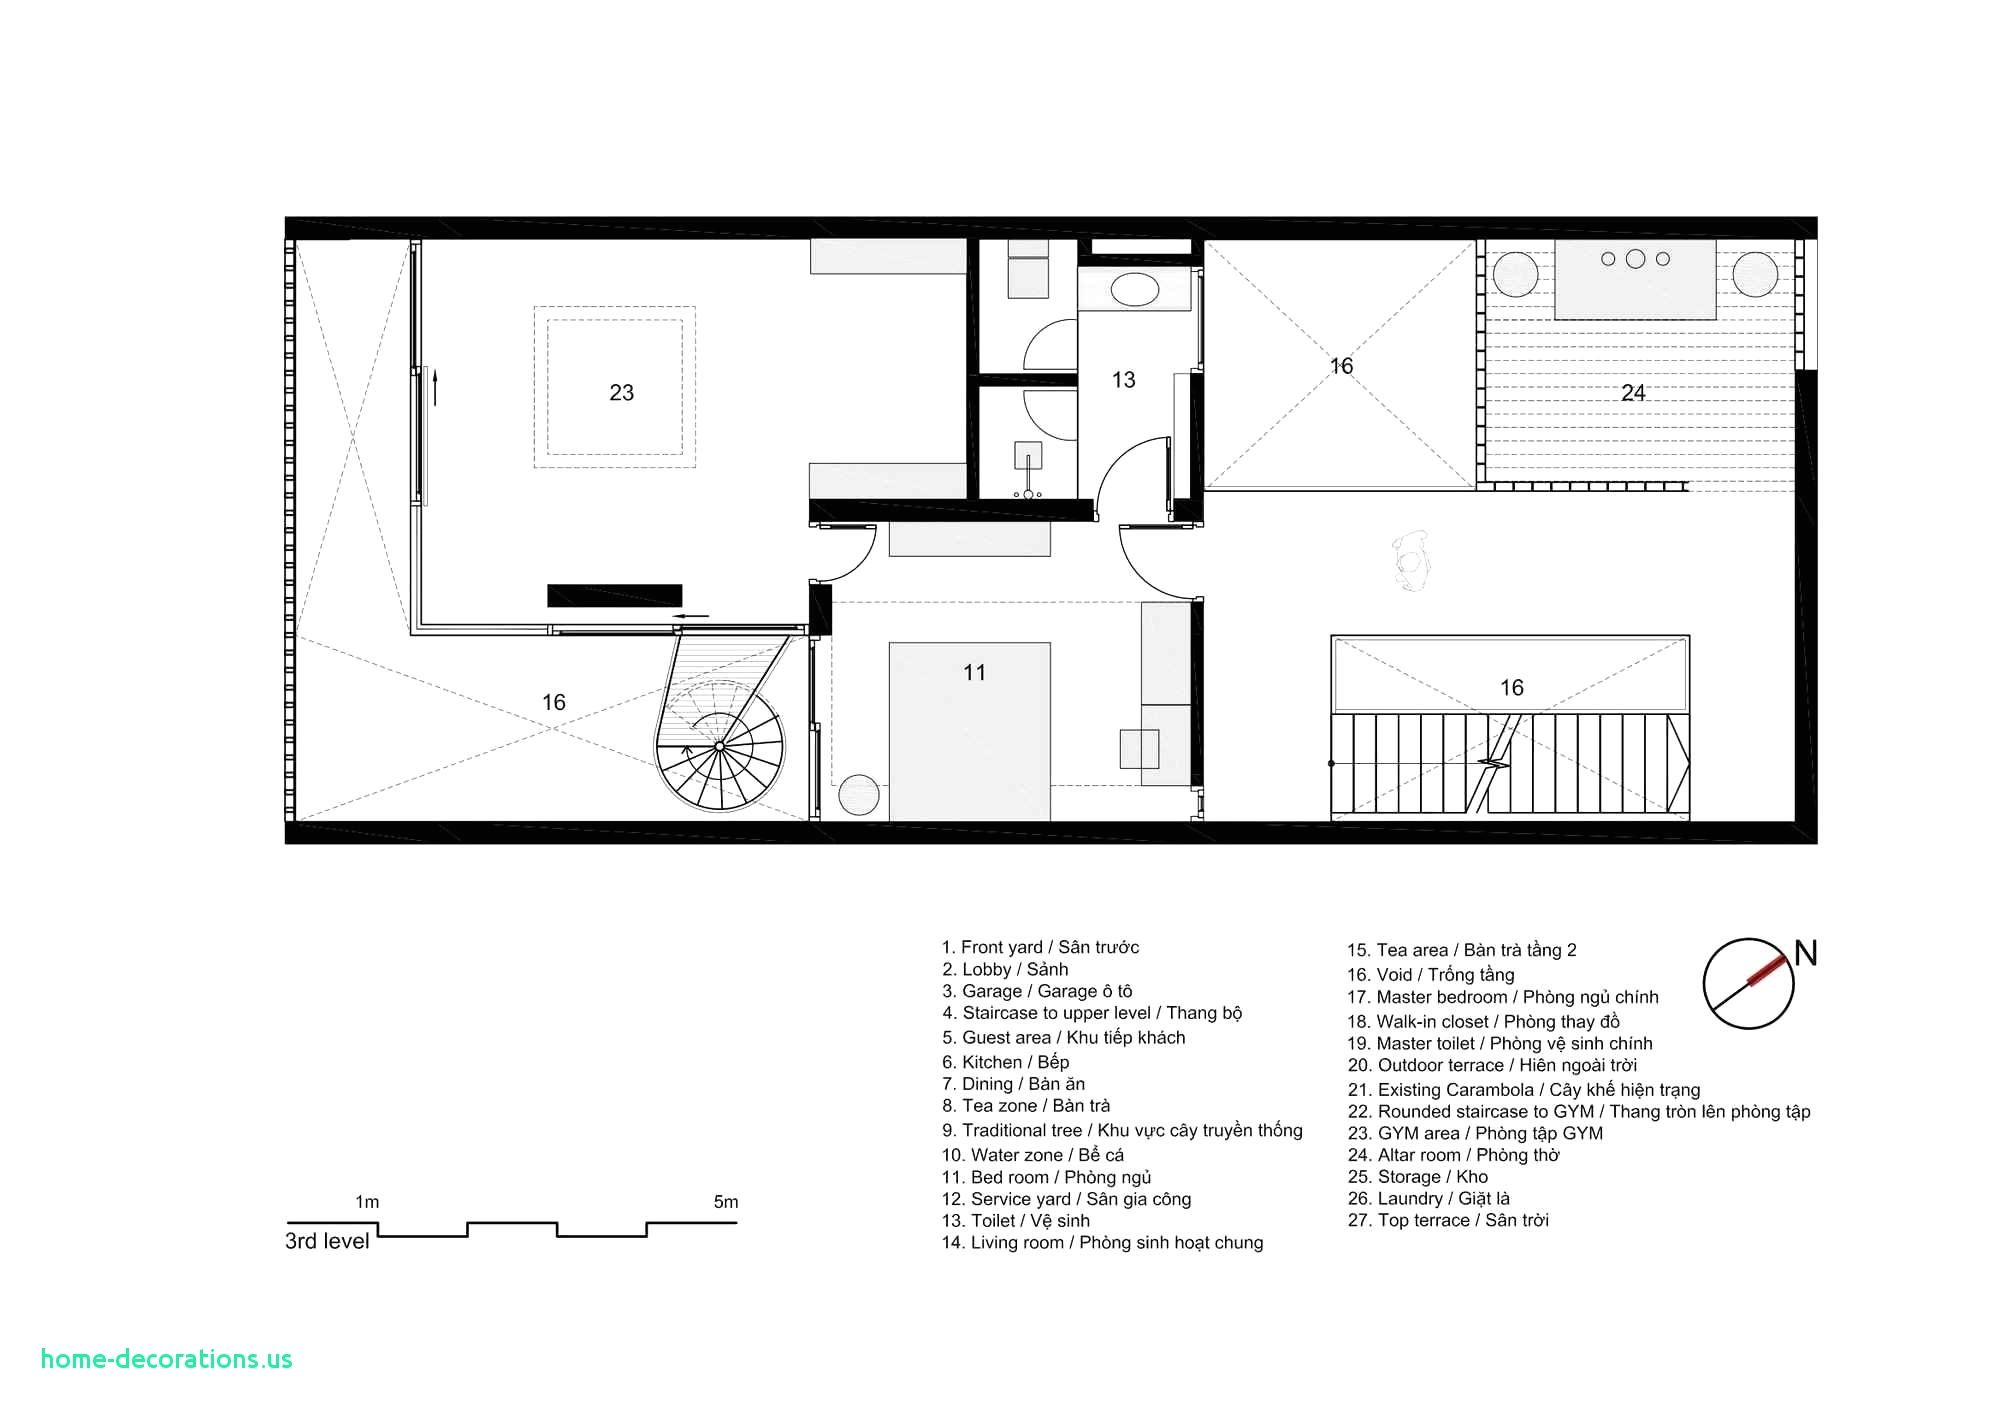 Awesome Residential Floor Plan With Dimensions